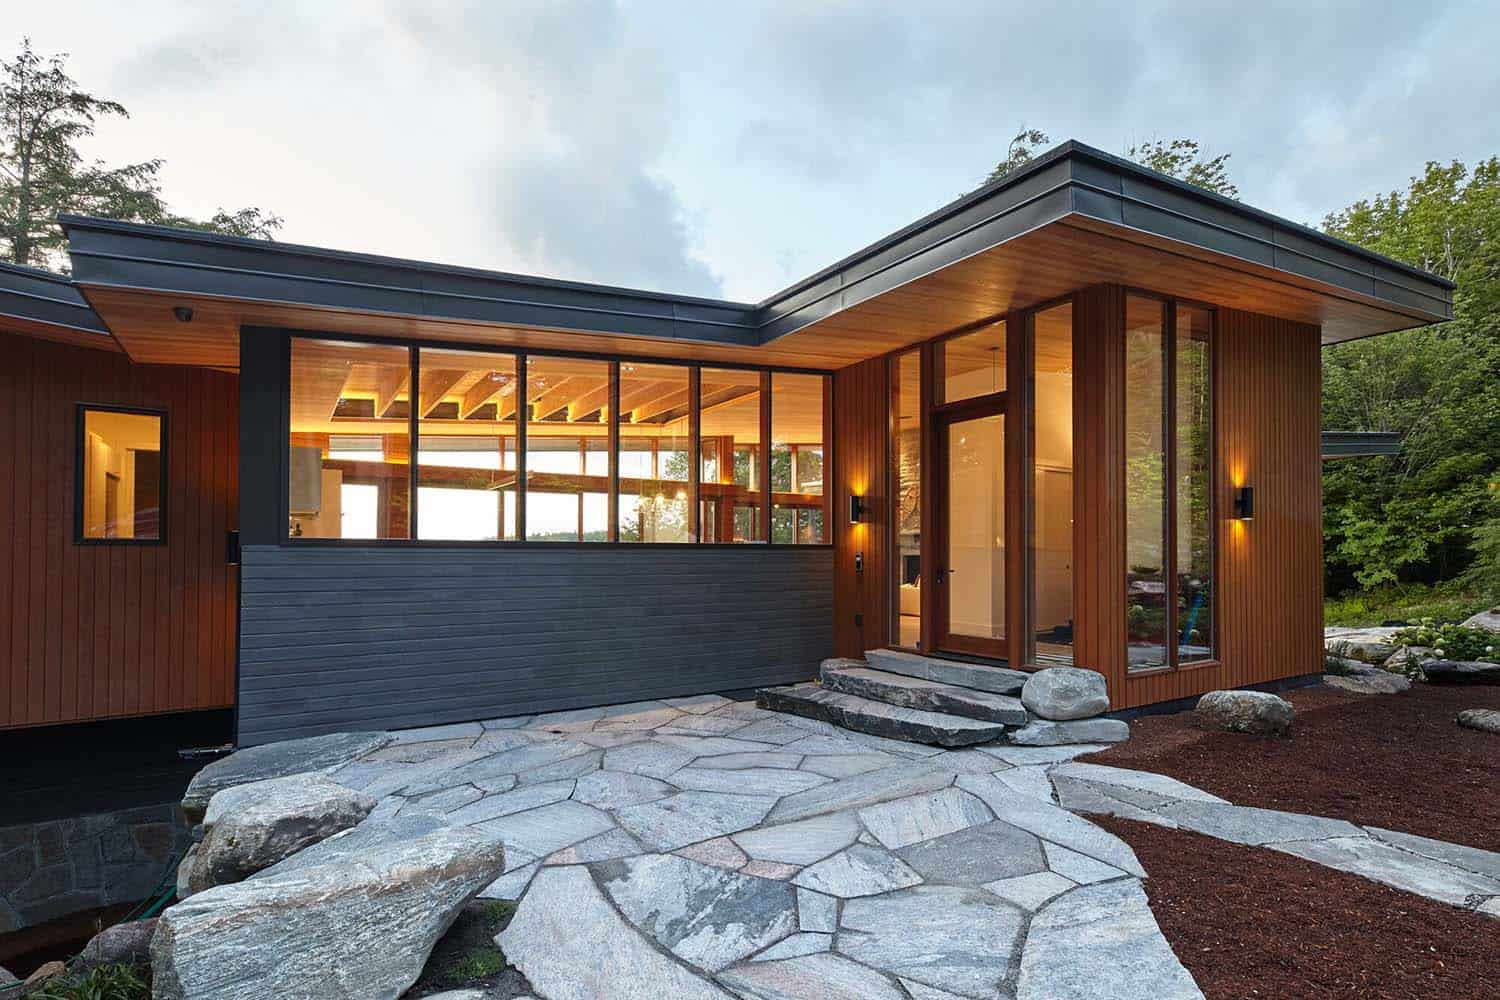 Stanley Bay Contemporary Cottage-Trevor McIvor Architect-02-1 Kindesign